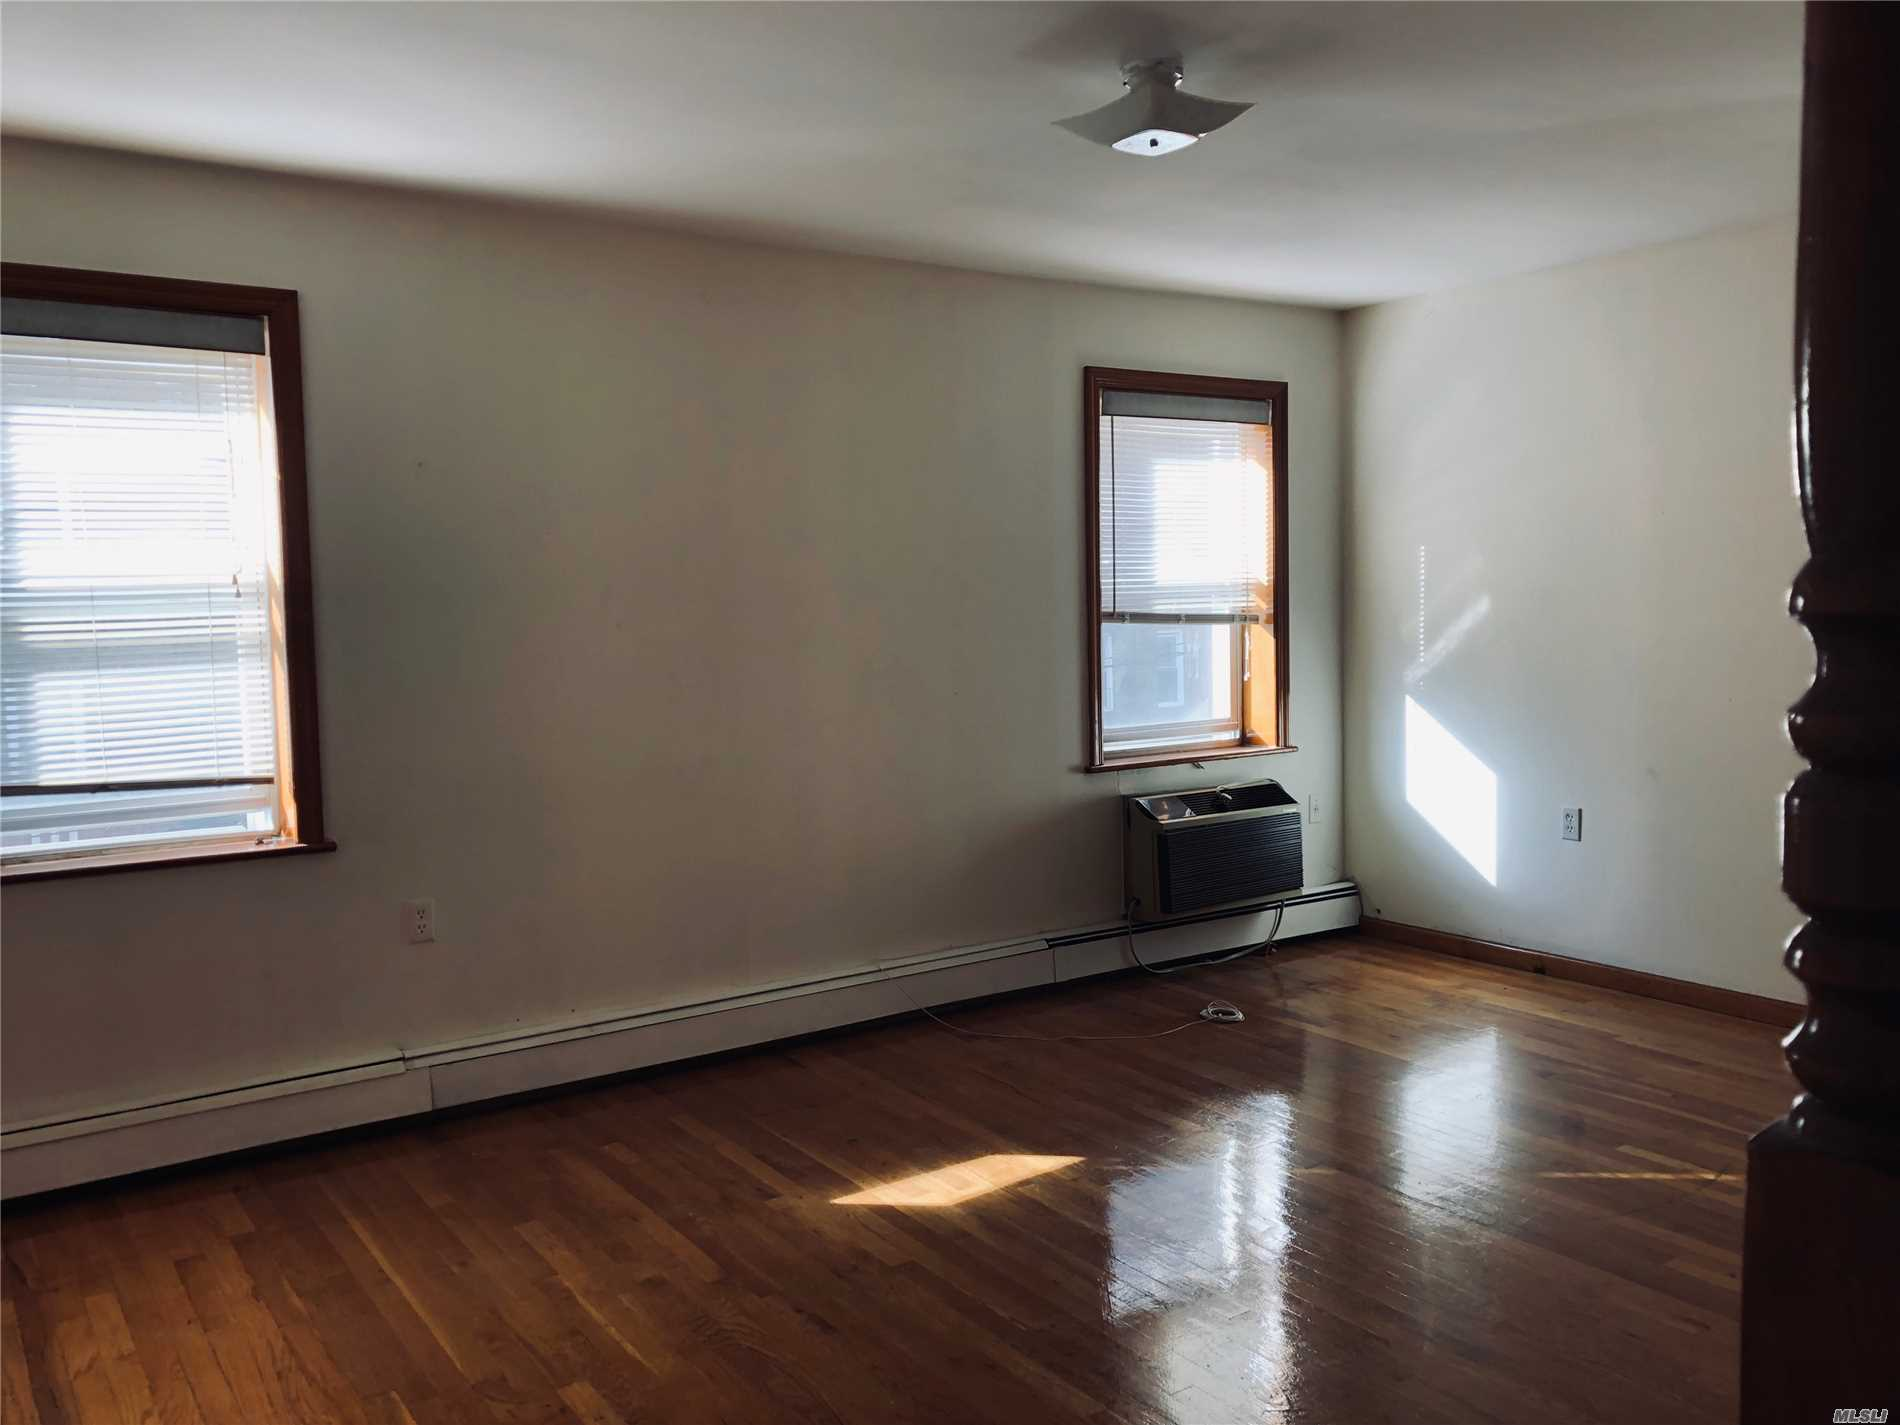 Rego Park Bright 2 Bedrooms In 2 Family House Near By Queens Blvd. Very Close To R/M Train Station. Shopping, School, Convenient To All.